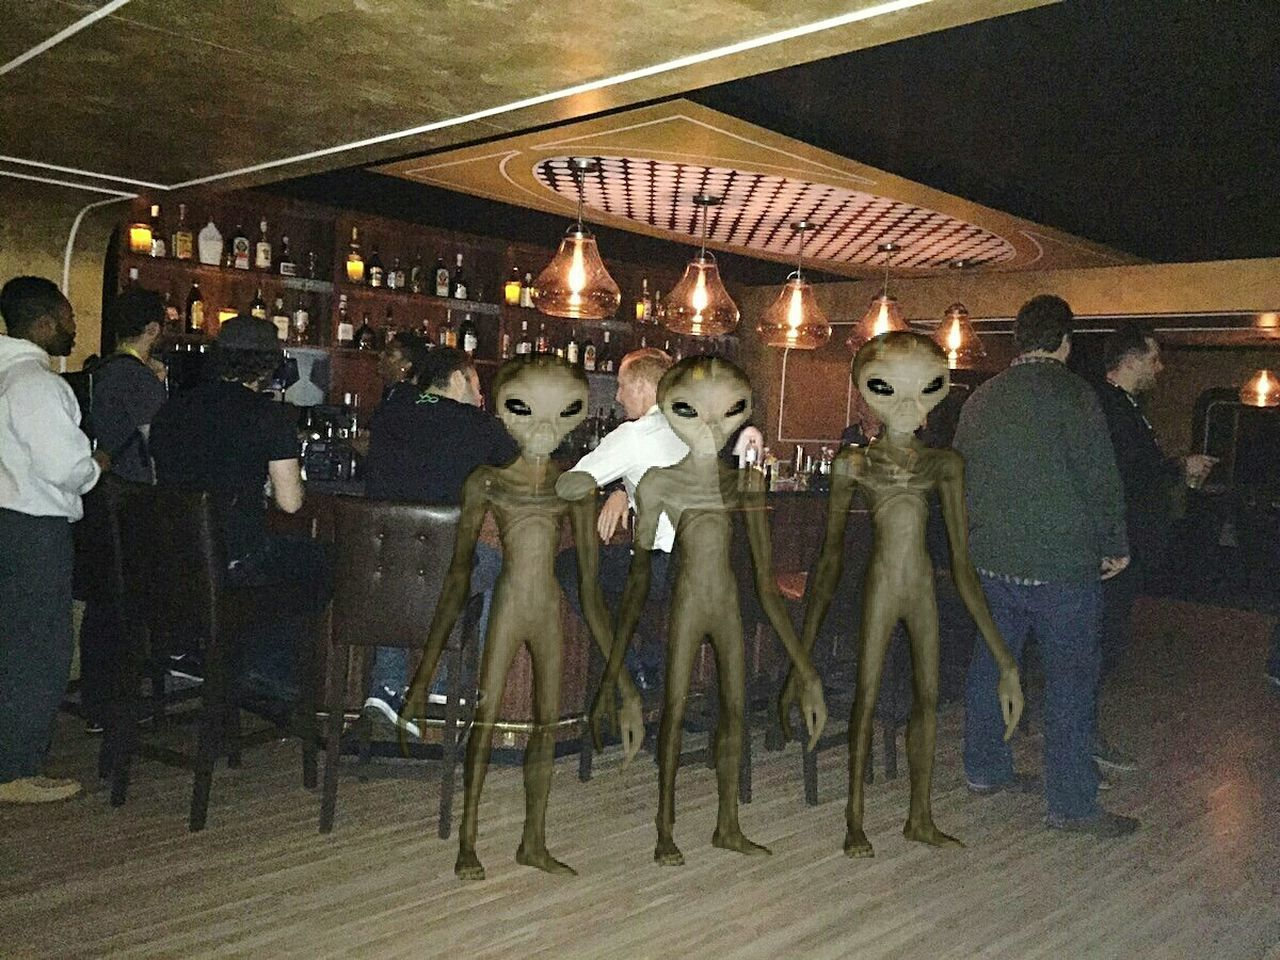 Extraterrestrial  SpaceShip Fantasy Extraterrestrial  London London London!!! Night Tranquility UFO Life Enjoying Life LONDON❤ Extraterrestrial  Cultures At Home Fantasy Dreaming Alien Invasion Alien Archival City Full Length People Travel Adults Only Illuminated Men